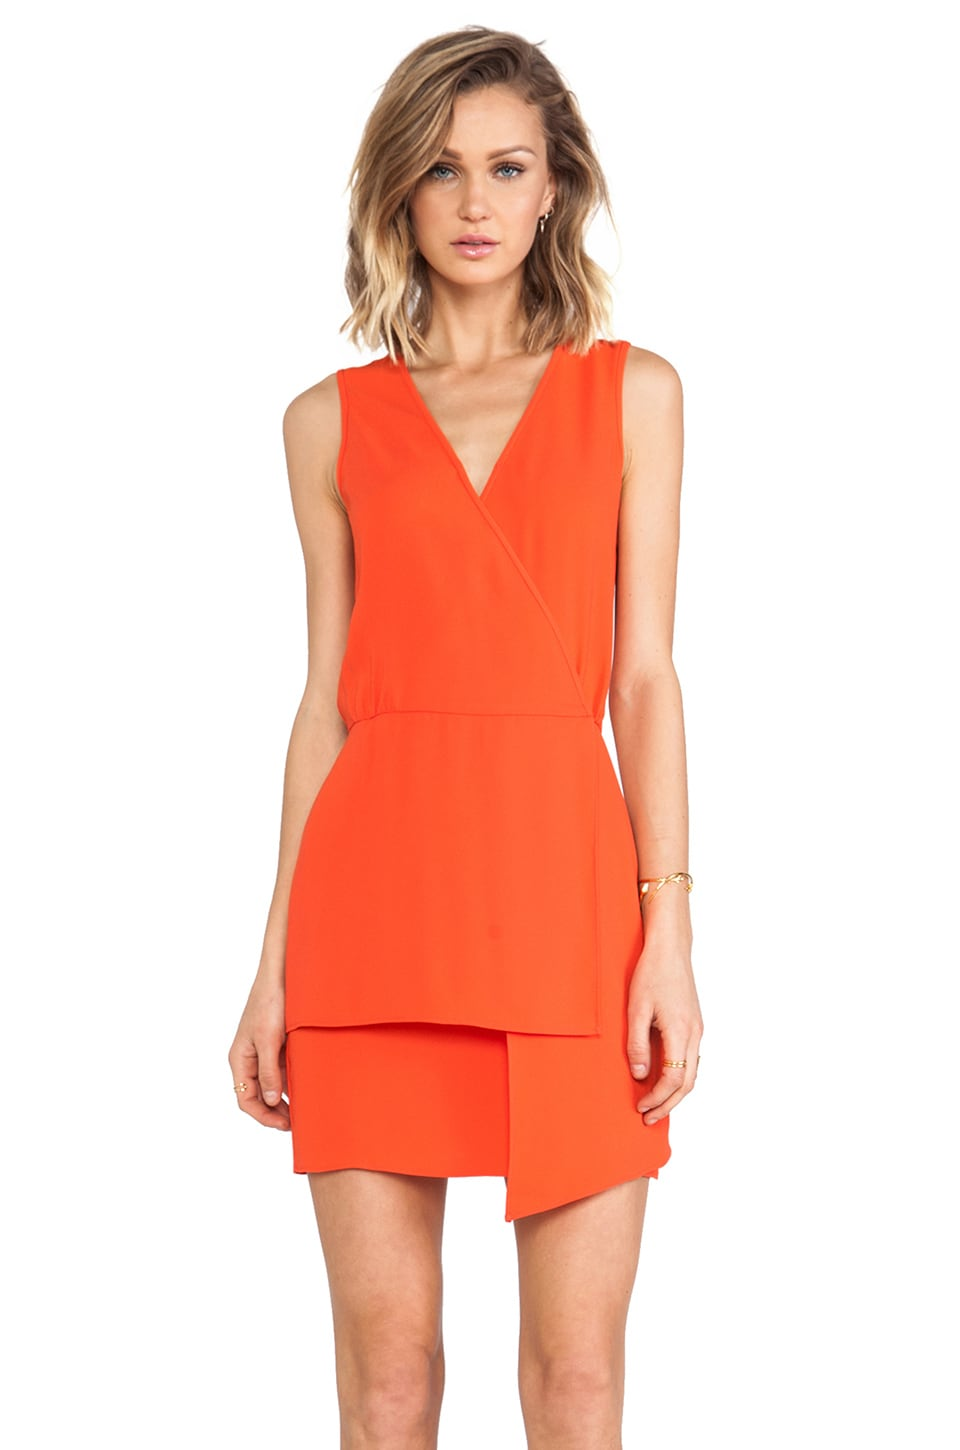 Tibi Bibelot Dress in Cayenne